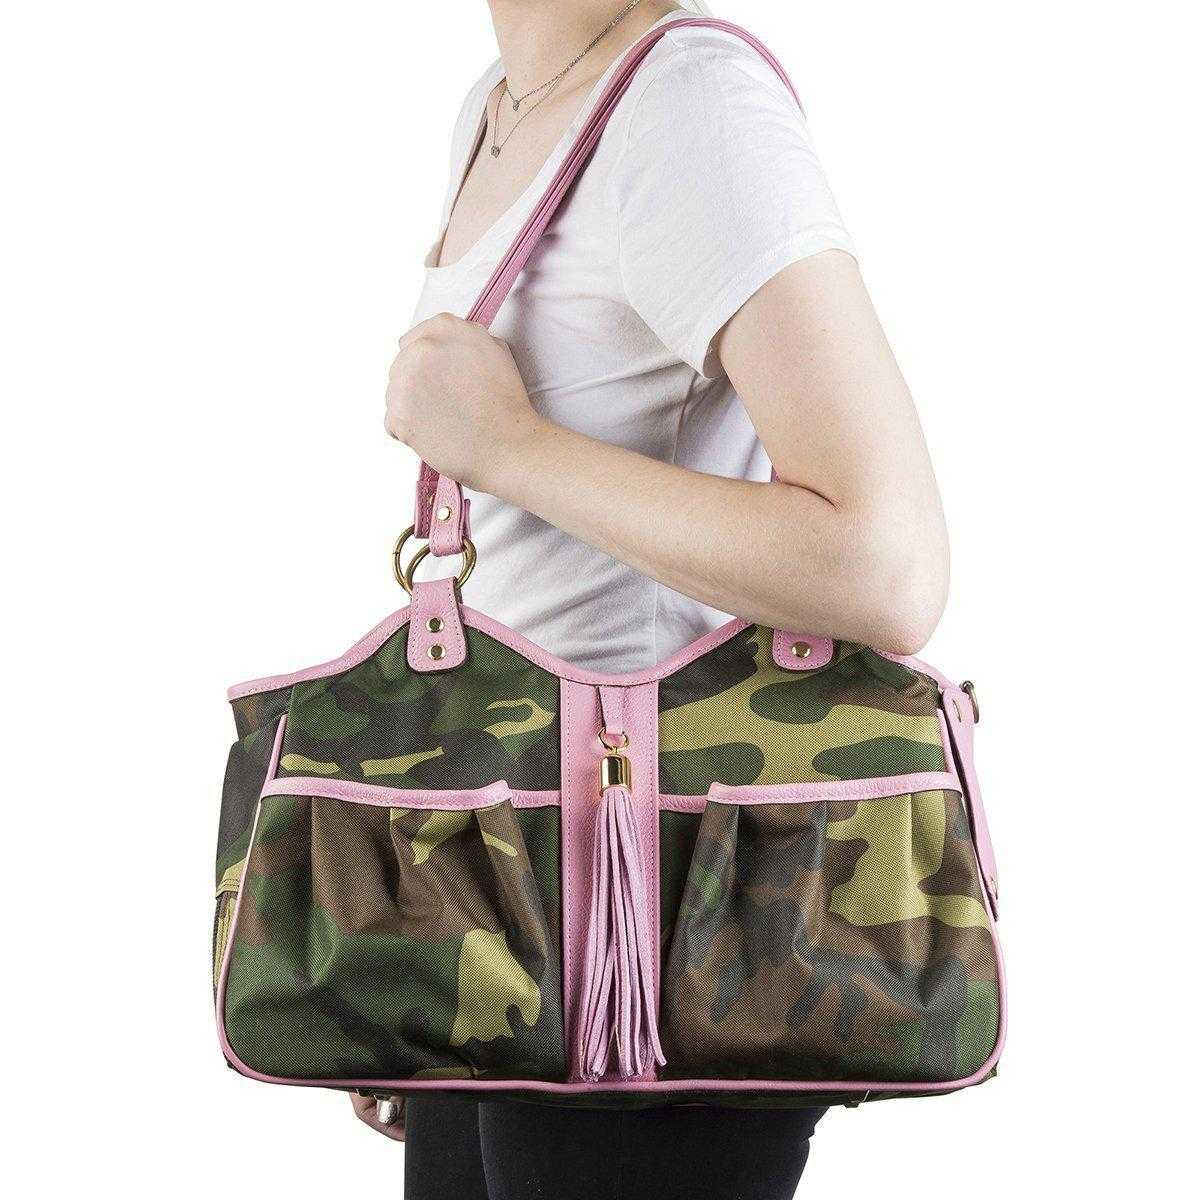 Metro Pet Carrier: Camo & Pink